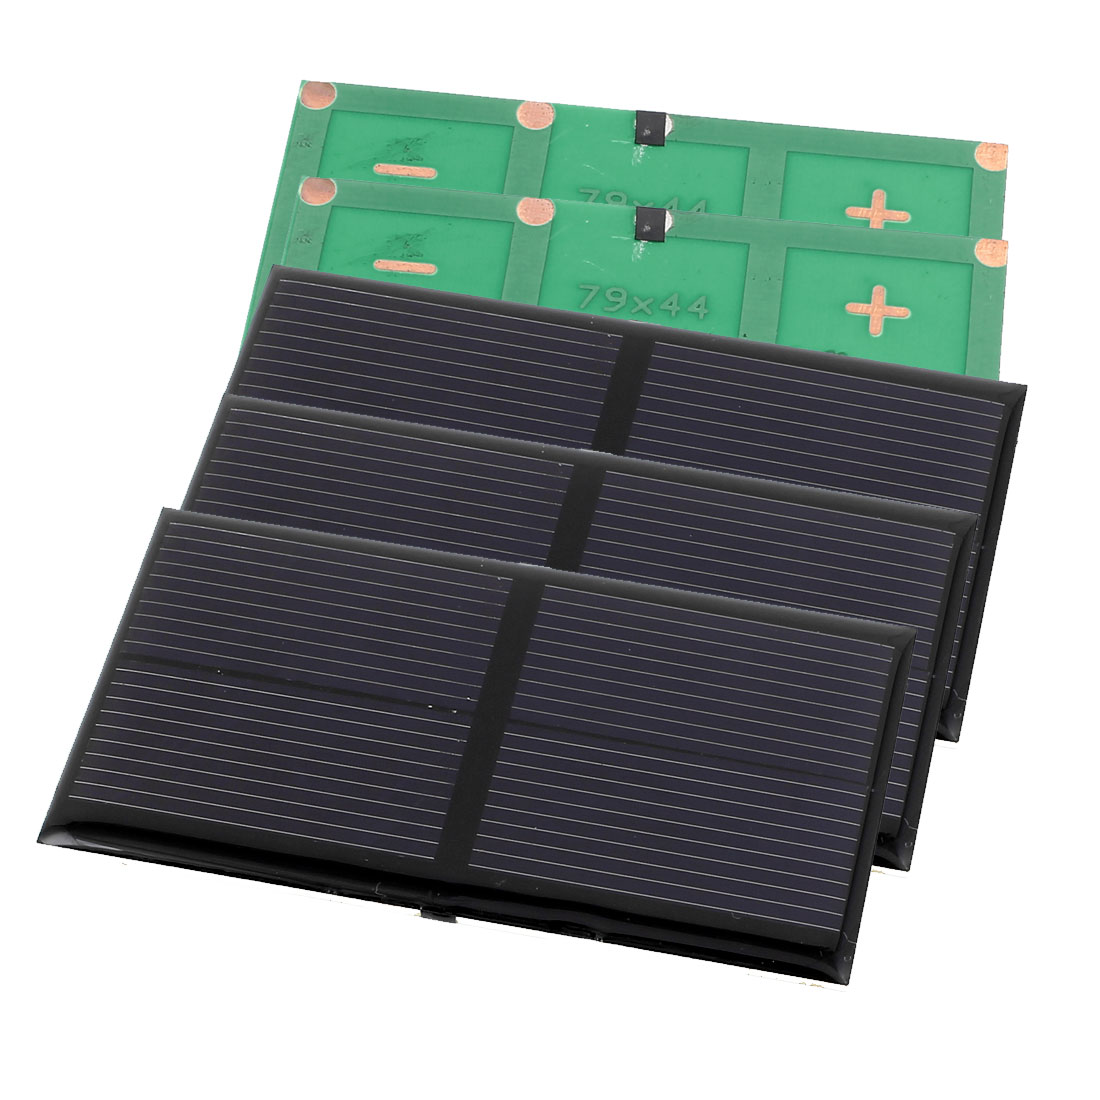 3 Pcs 2V 0.8W DIY Polycrystallinesilicon Solar Panel Power Cell Battery Charger 79mm x 44mm